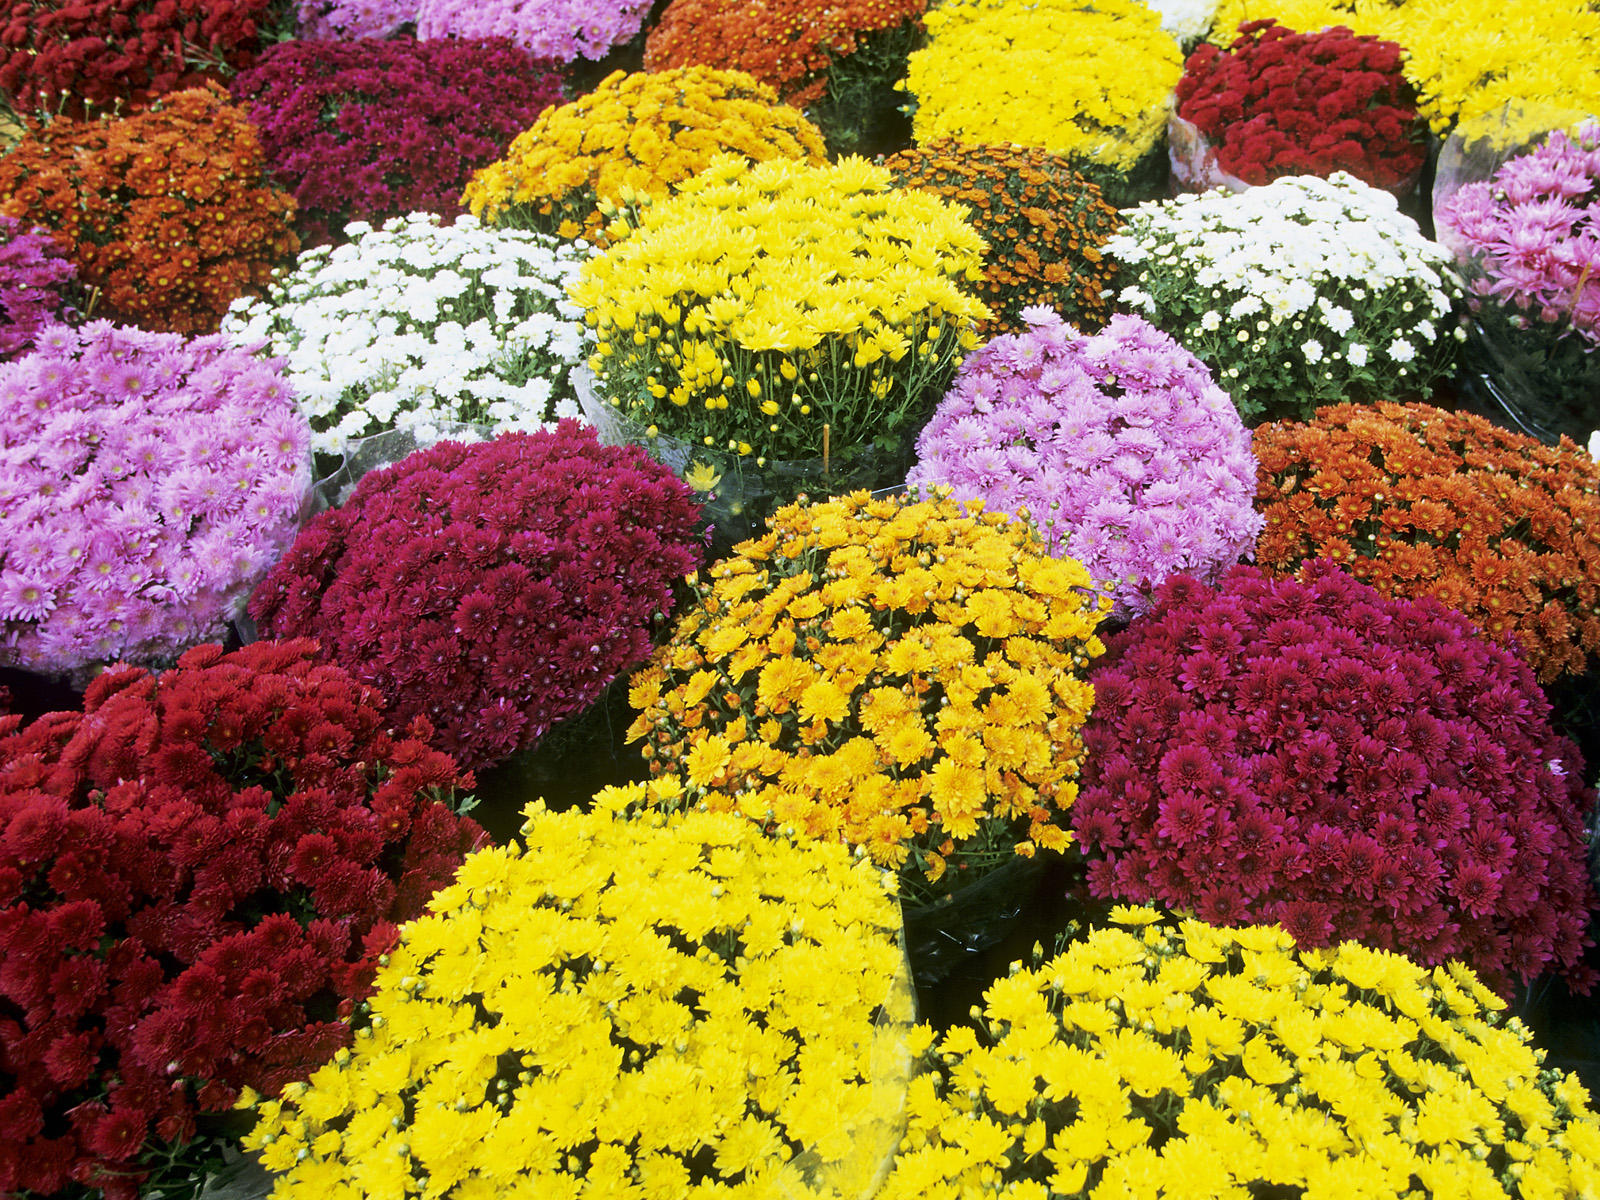 mums chrysanthemums at a flower market in southern france